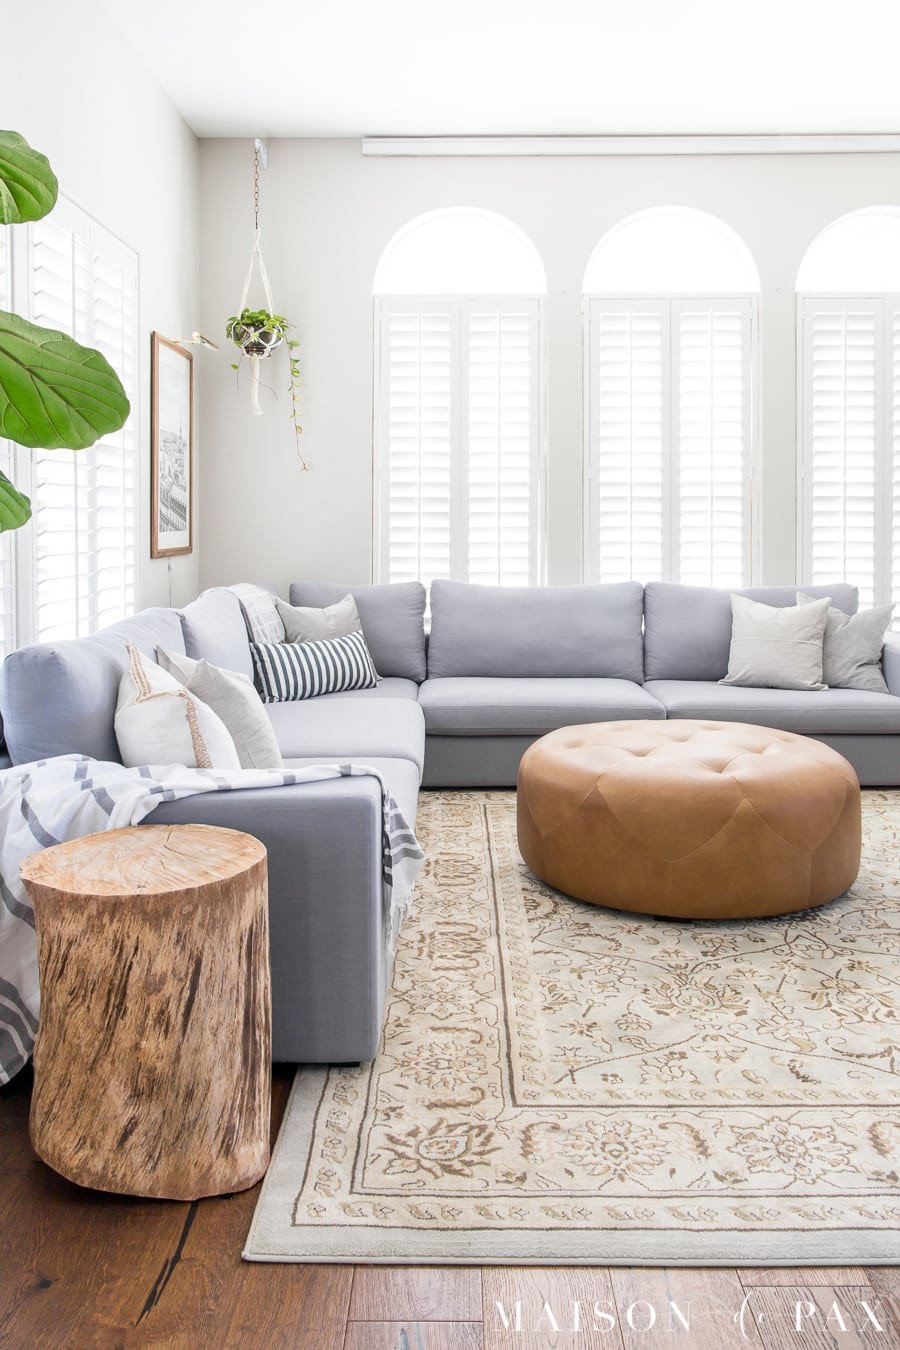 Living Room Decor with Sectional Awesome How to Decorate A Living Room with A Sectional Maison De Pax